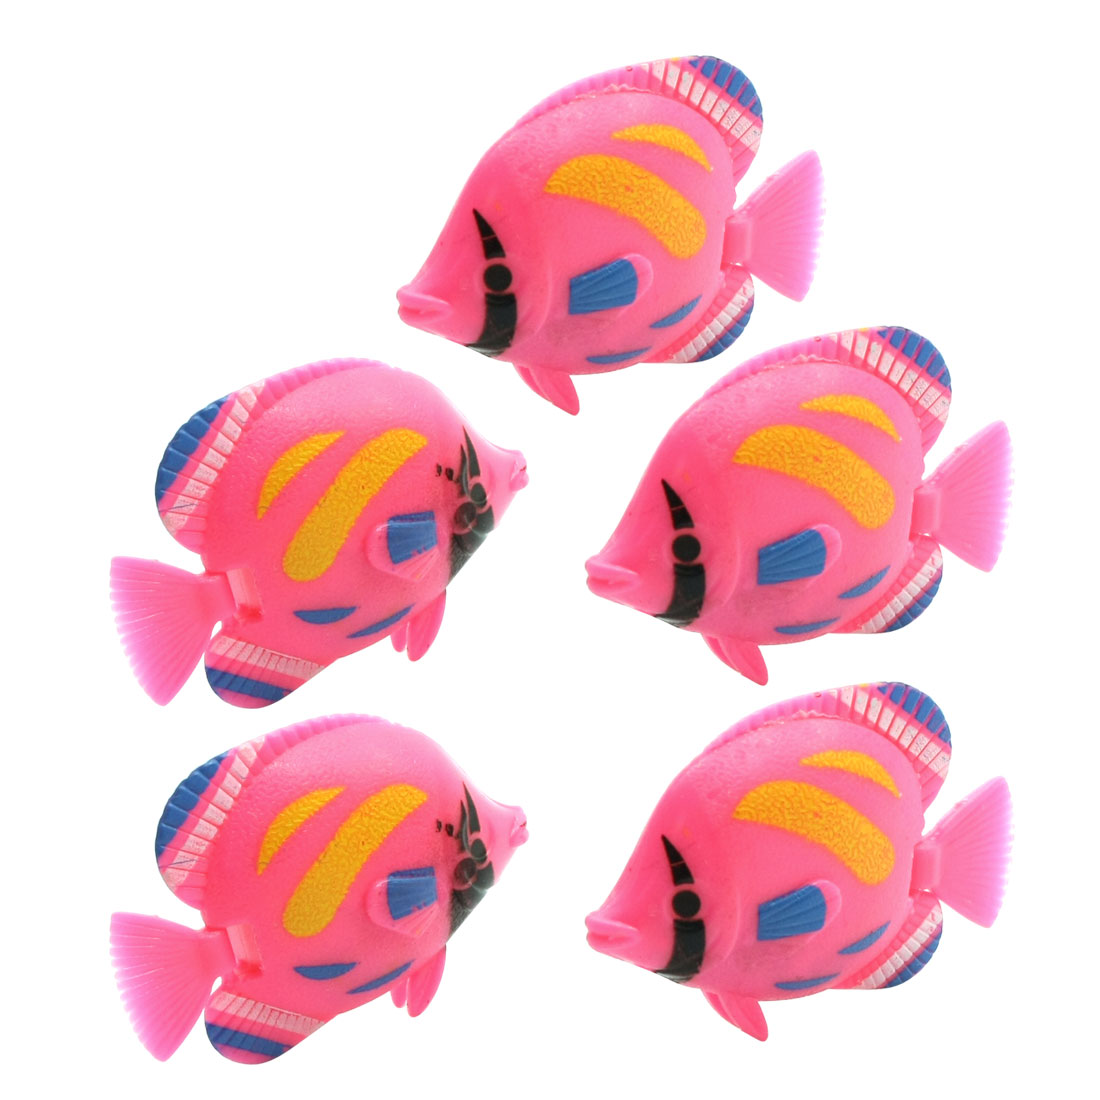 Fish Tank Artificial Swing Tail Plastic Fishes Pink 5 Pcs